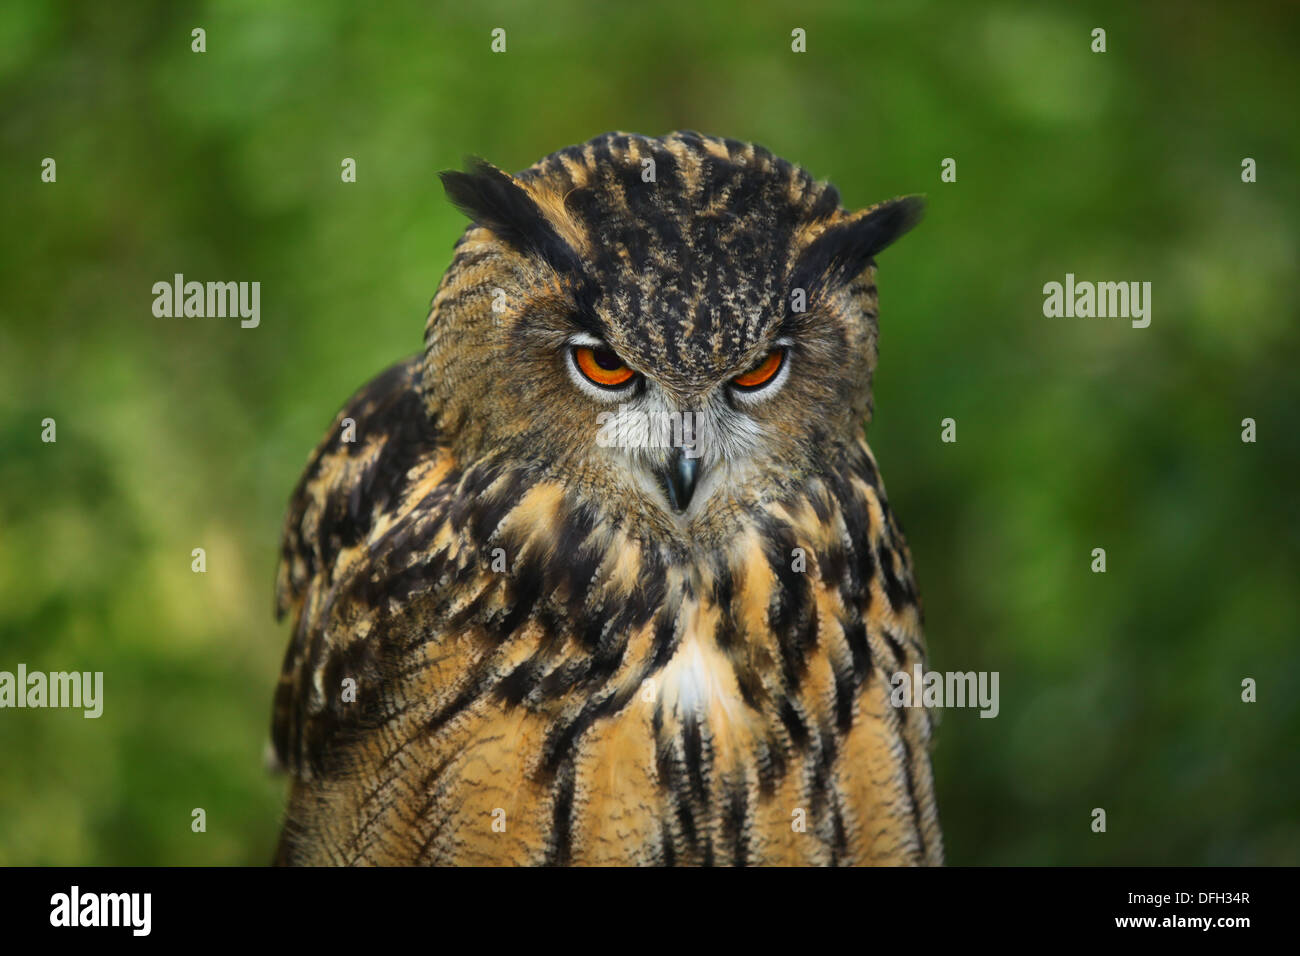 Eagle Owl with menacing stare - Stock Image